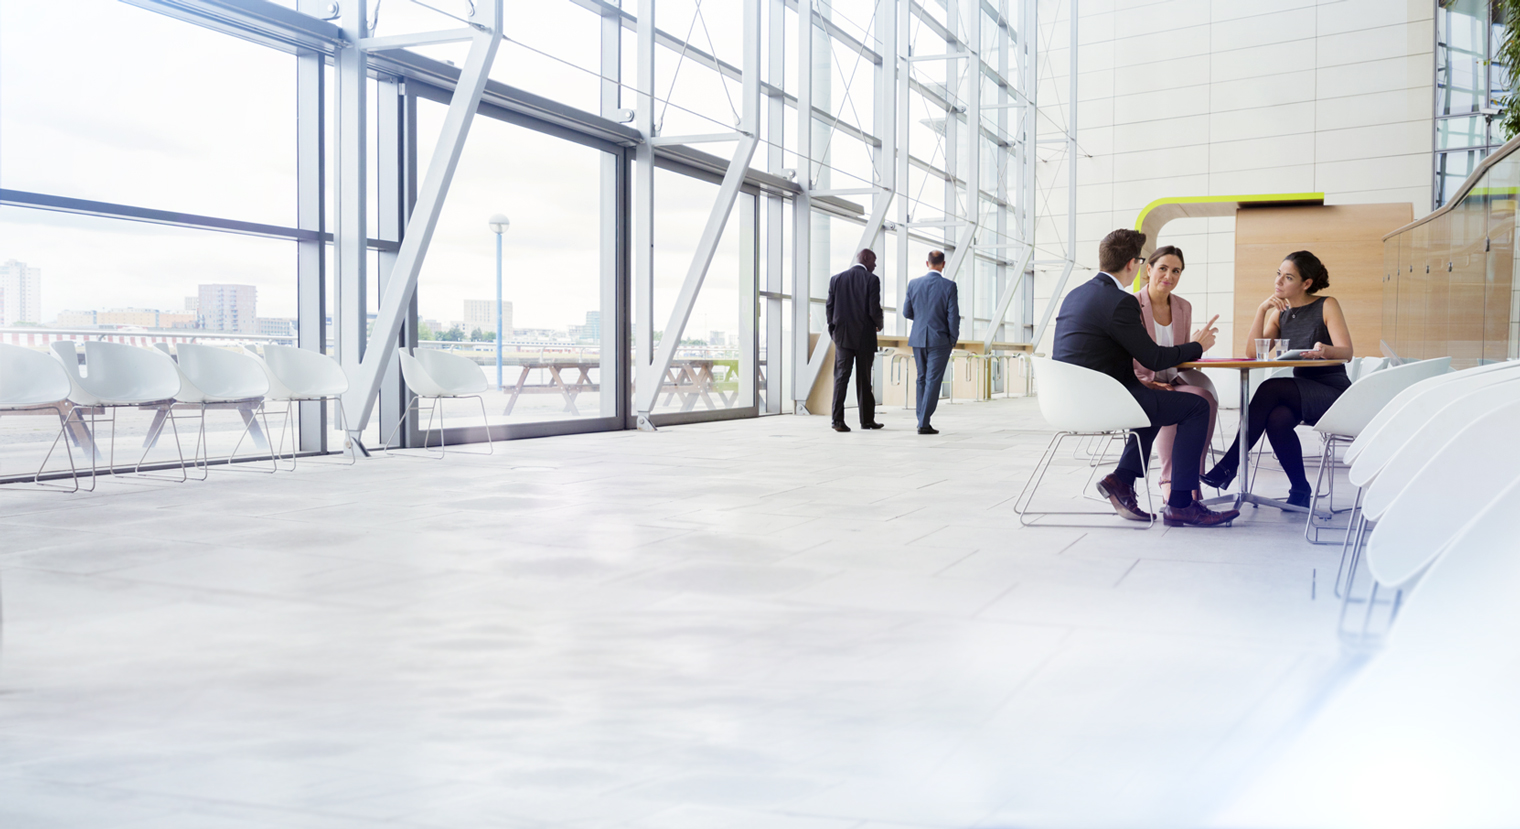 HSBC wins best bank for Global Markets at Central Banking Awards 2019